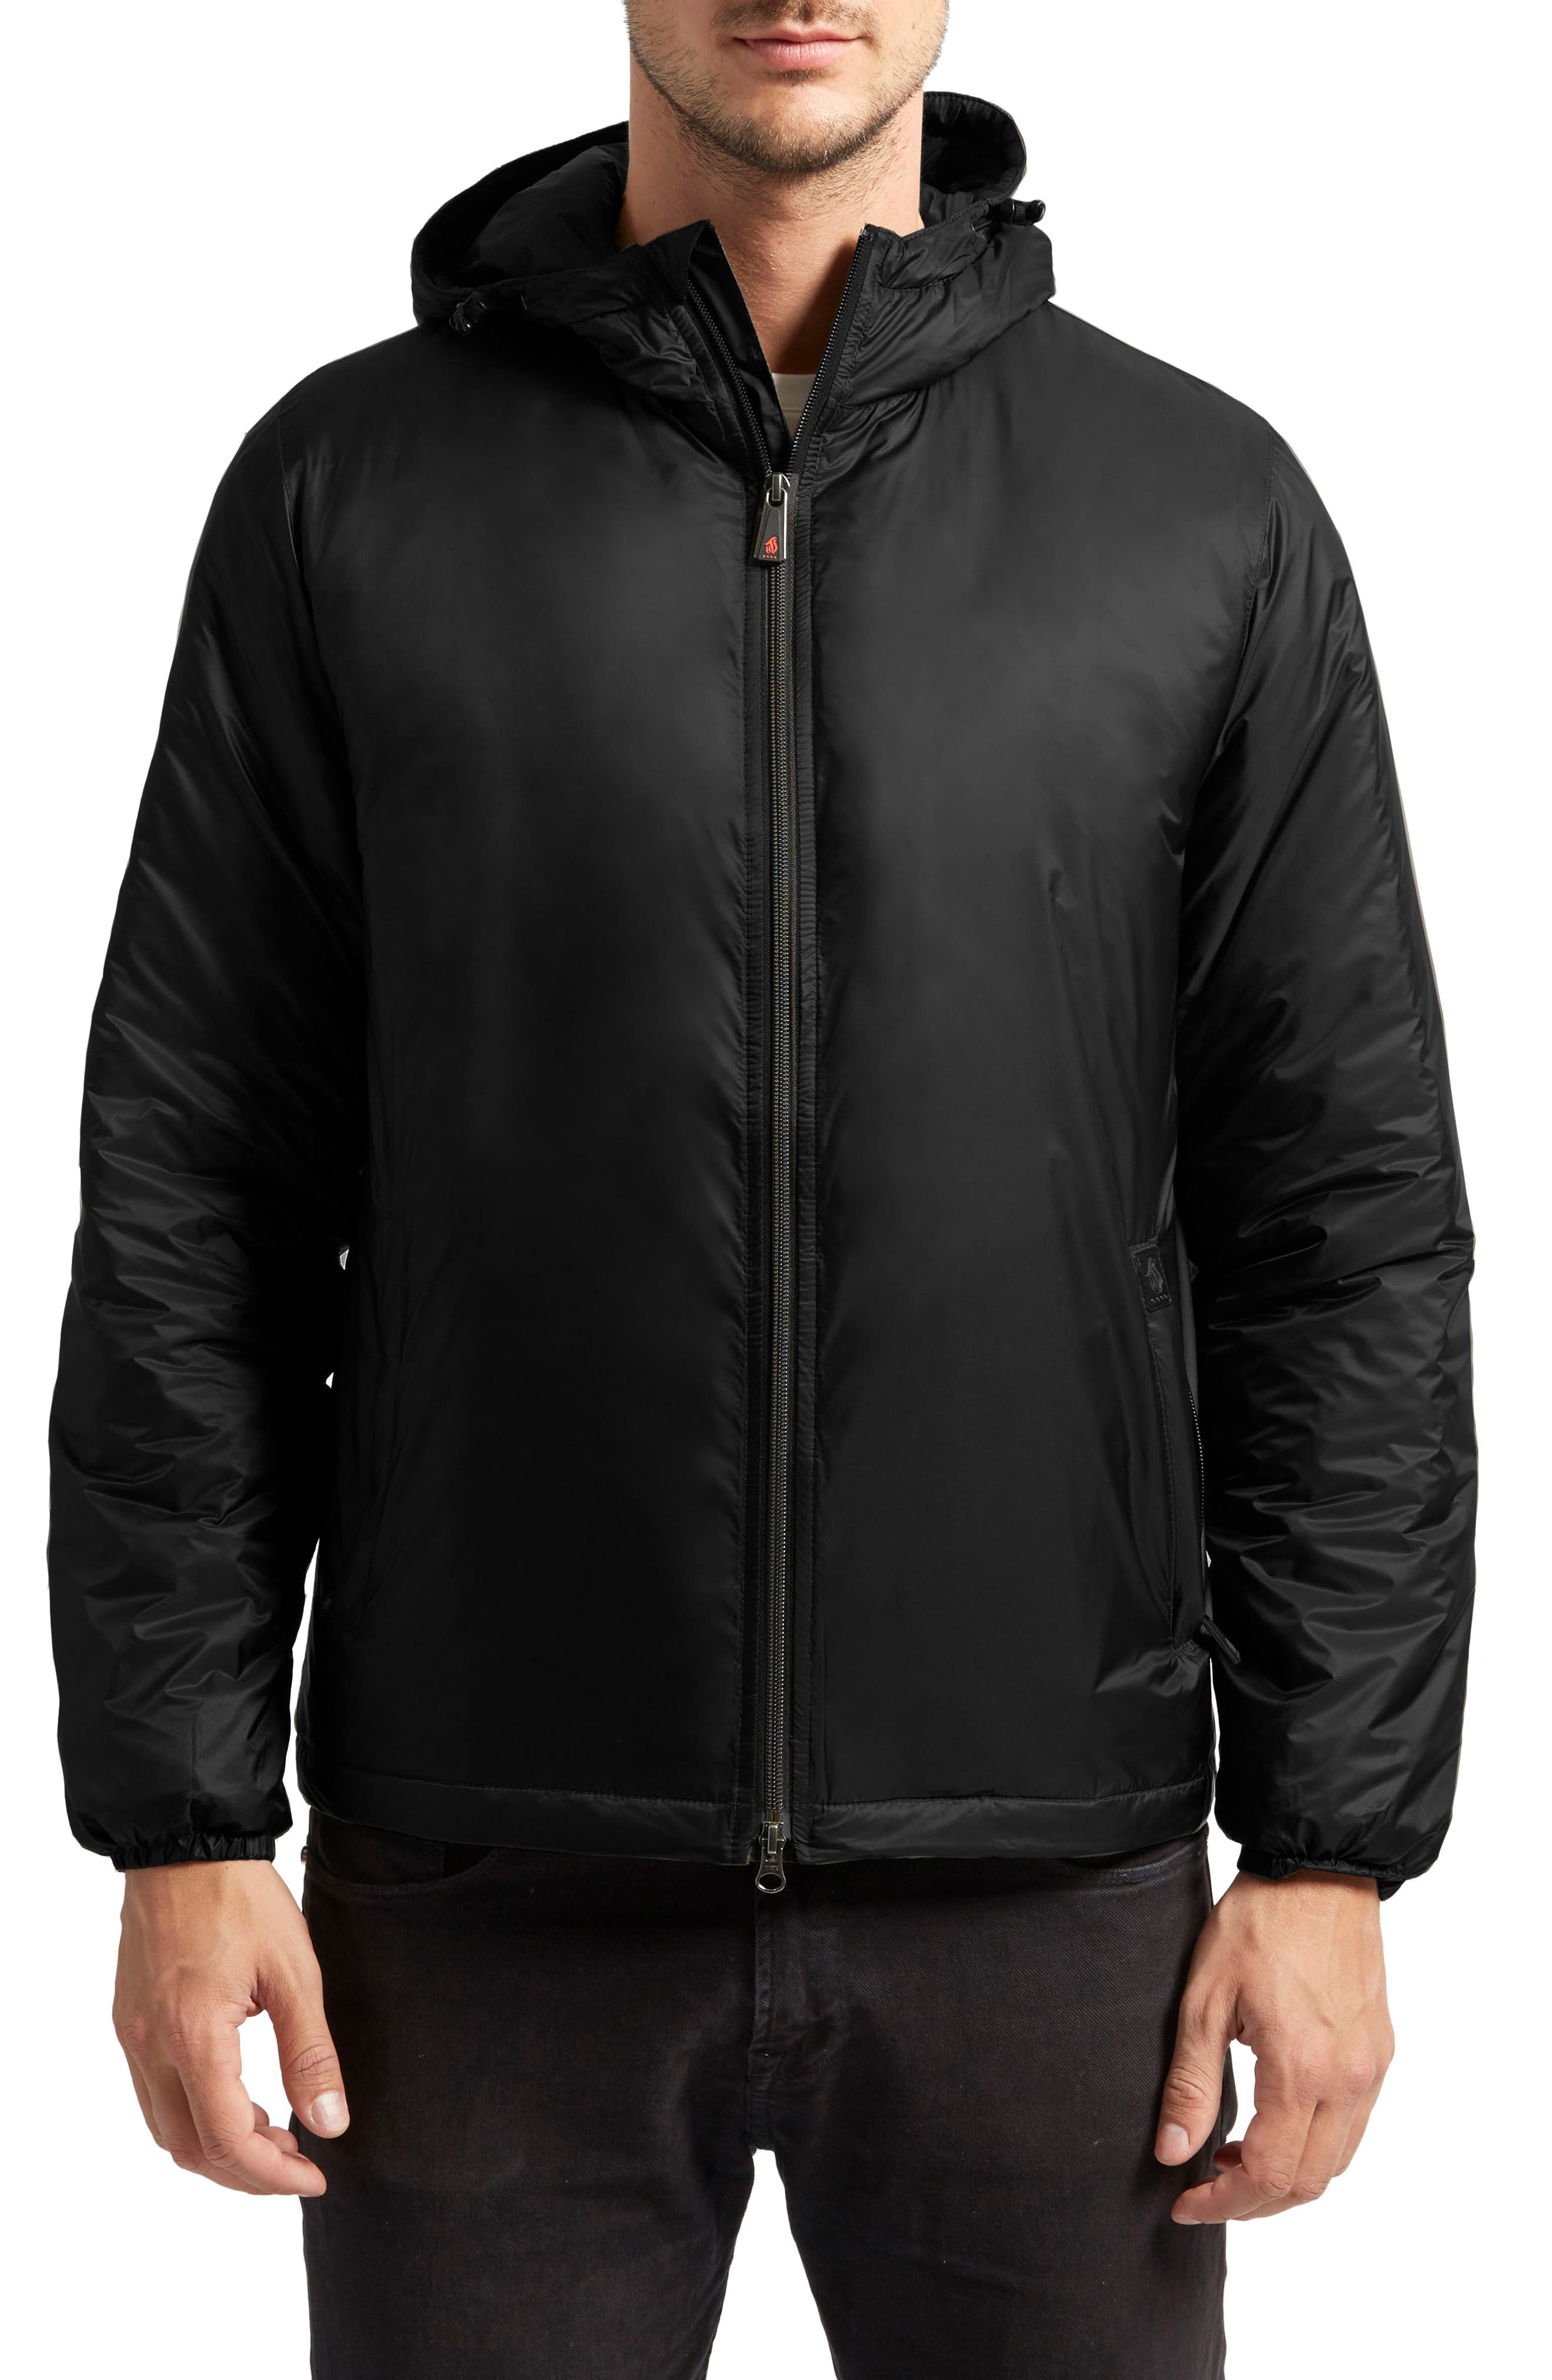 Arvada Packable Heat System Hooded Jacket,                         Main,                         color, 001